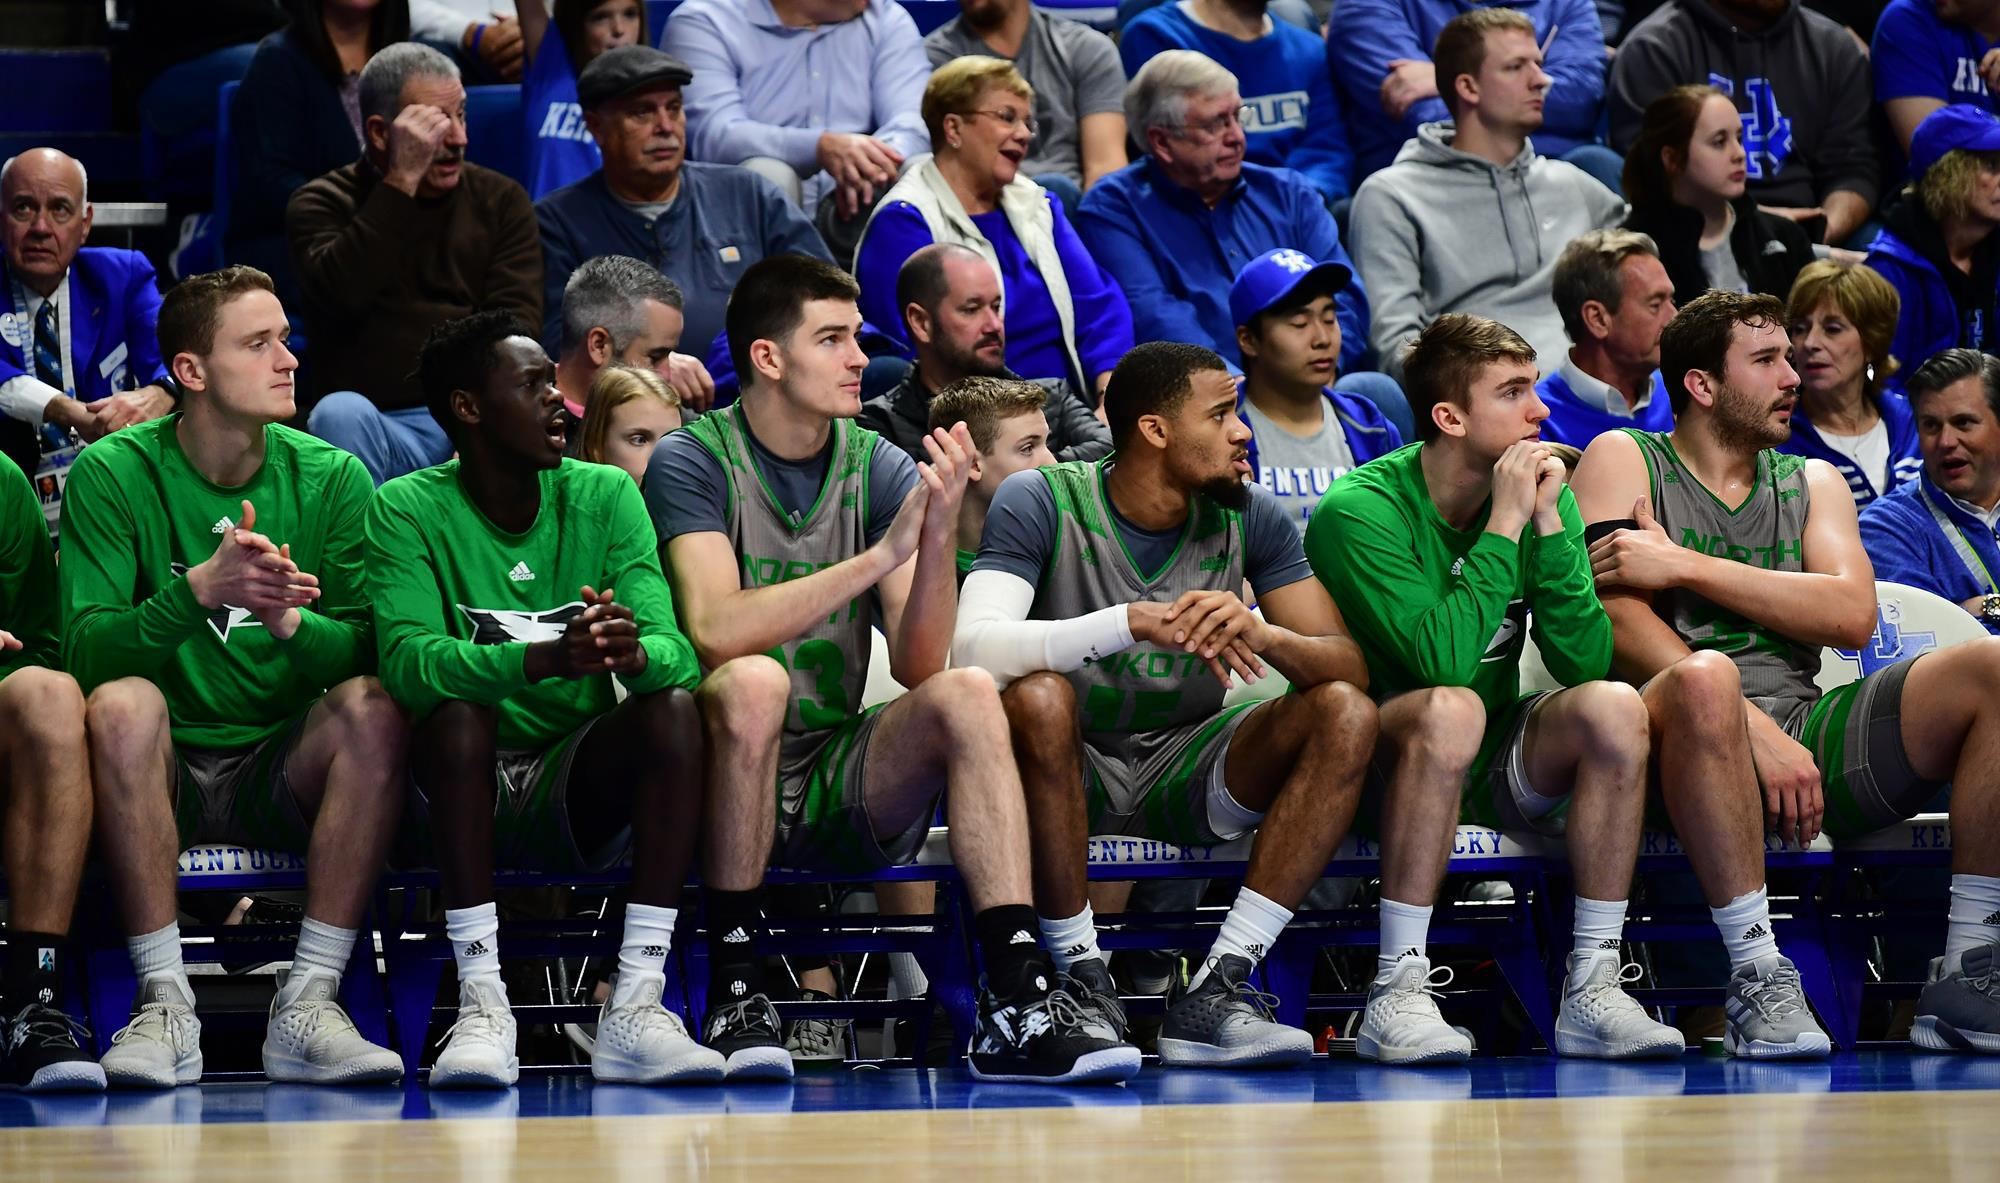 NOTES: Bulldogs on tap for Fighting Hawks hoops squad - University